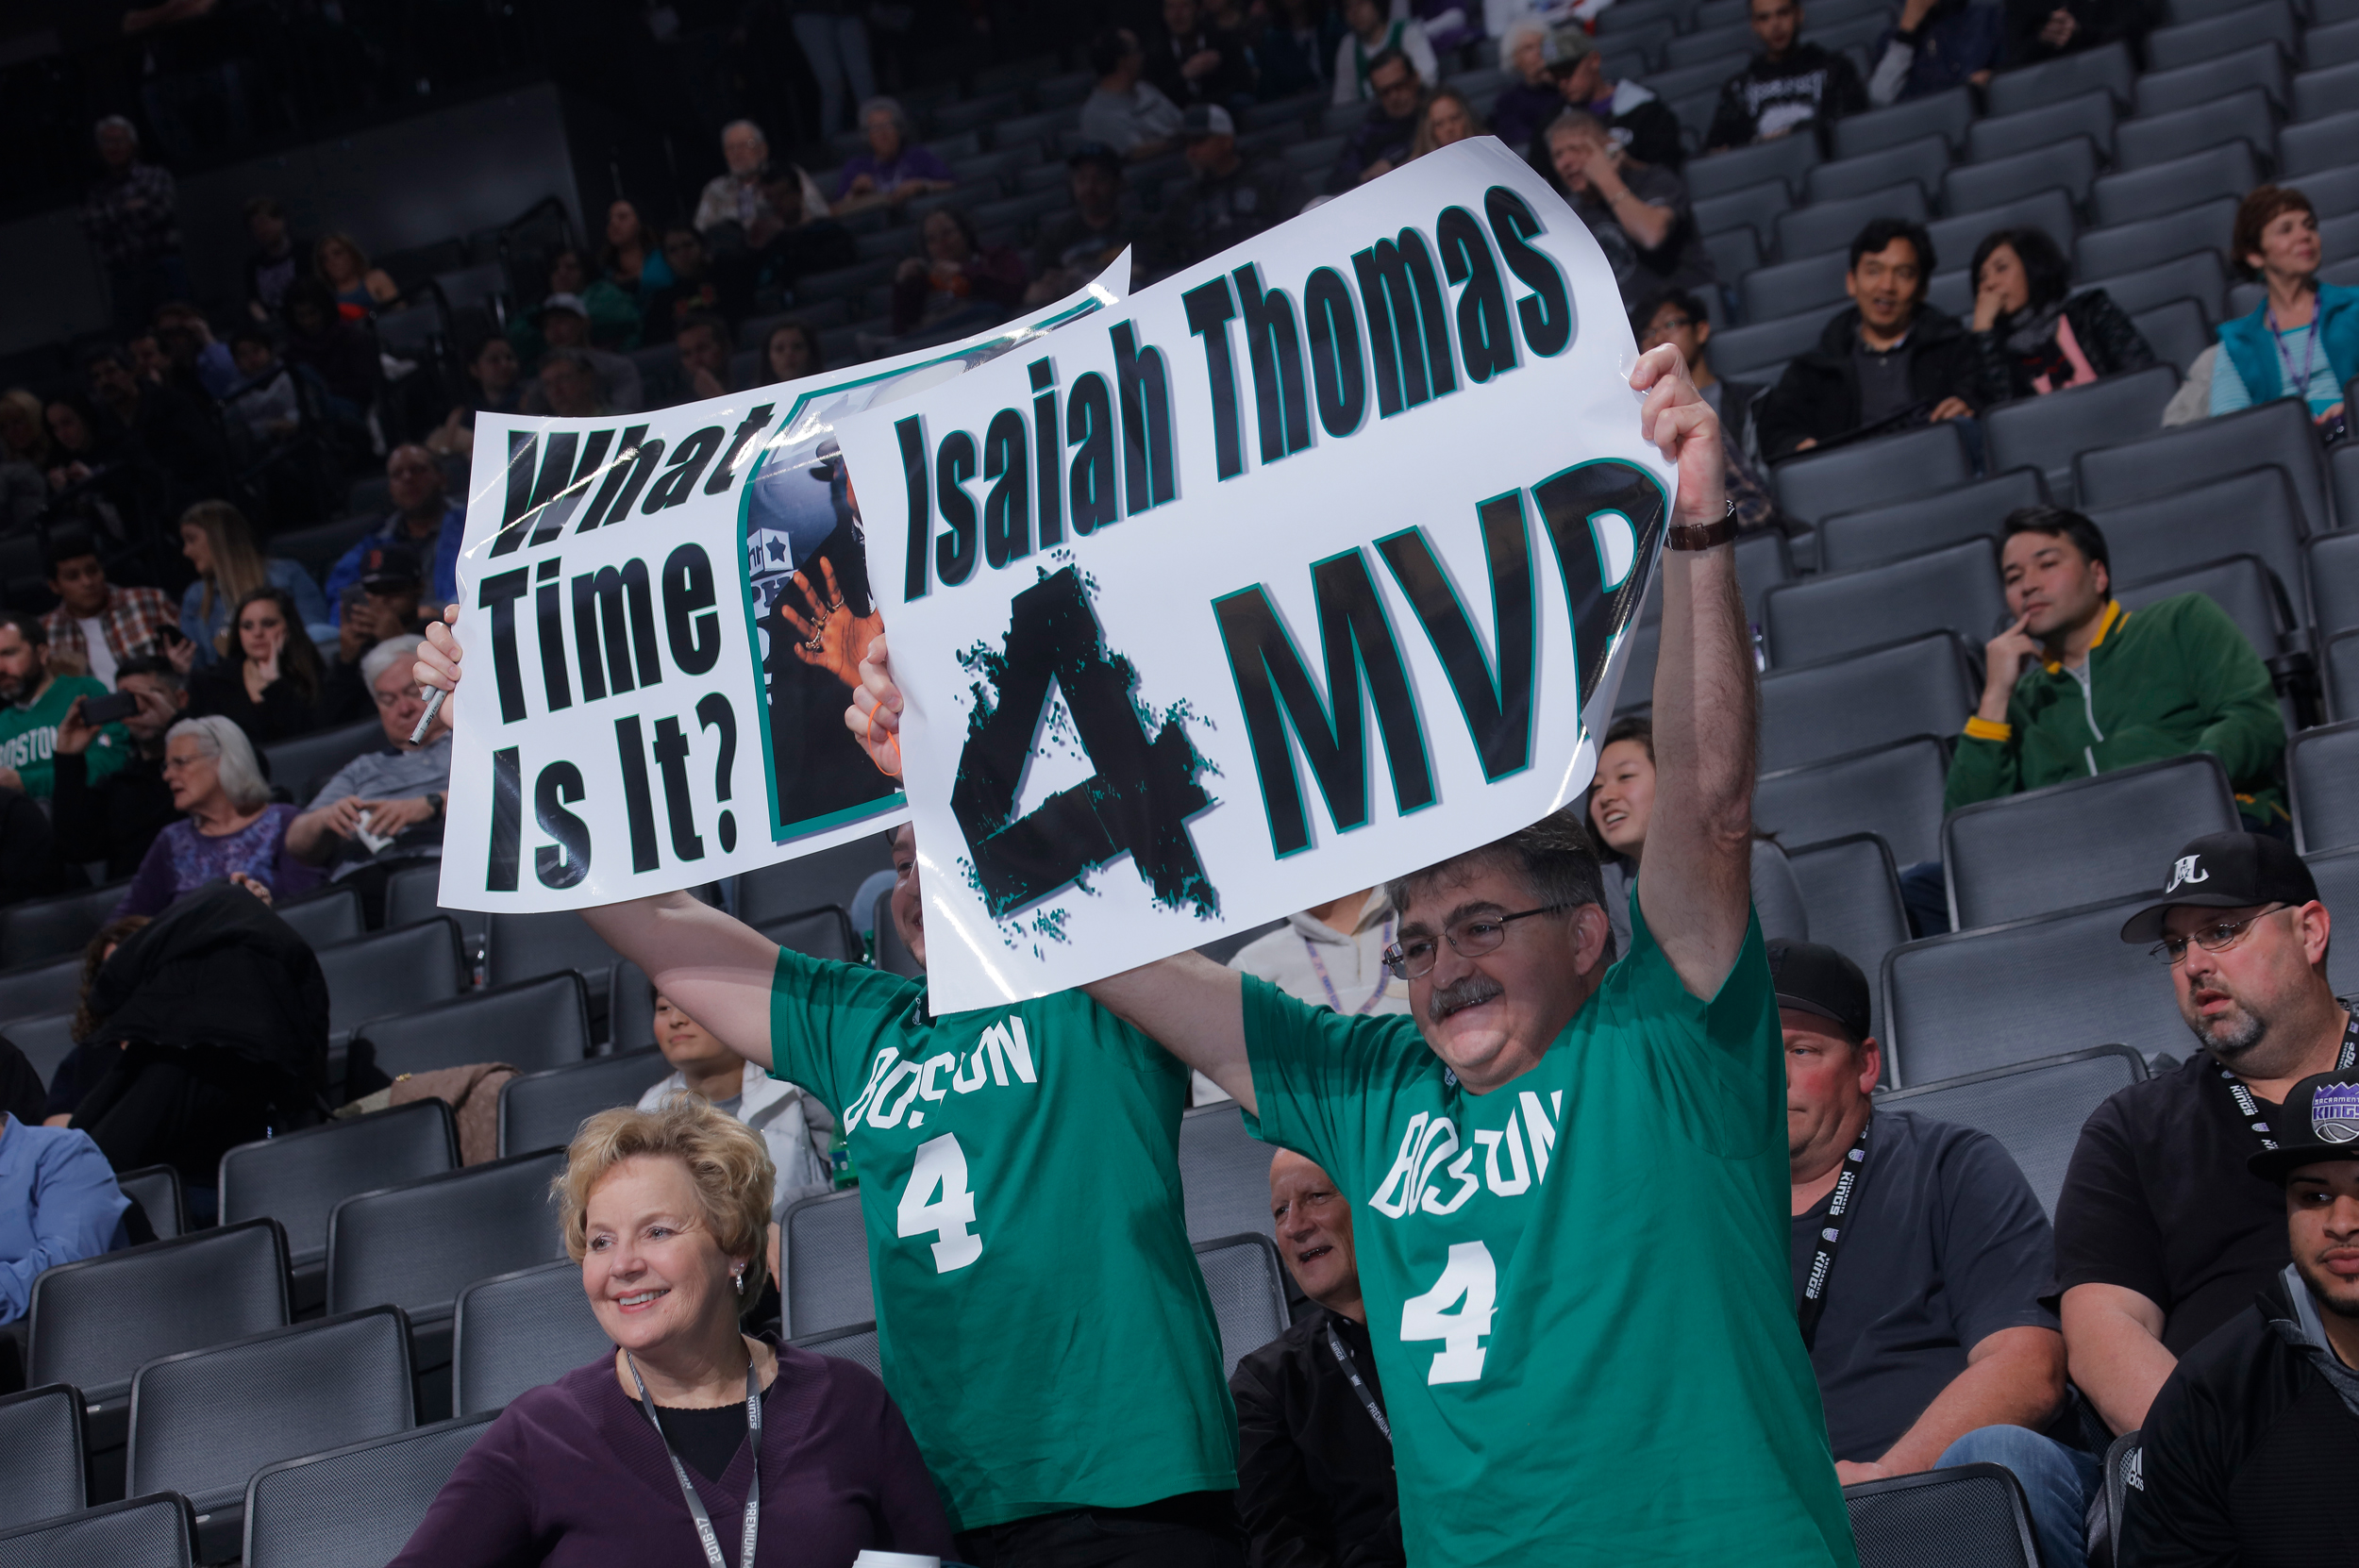 Fans cheer on Isaiah Thomas #4 of the Boston Celtics during the game against the Sacramento Kings on February 8, 2017 at Golden 1 Center in Sacramento, California.